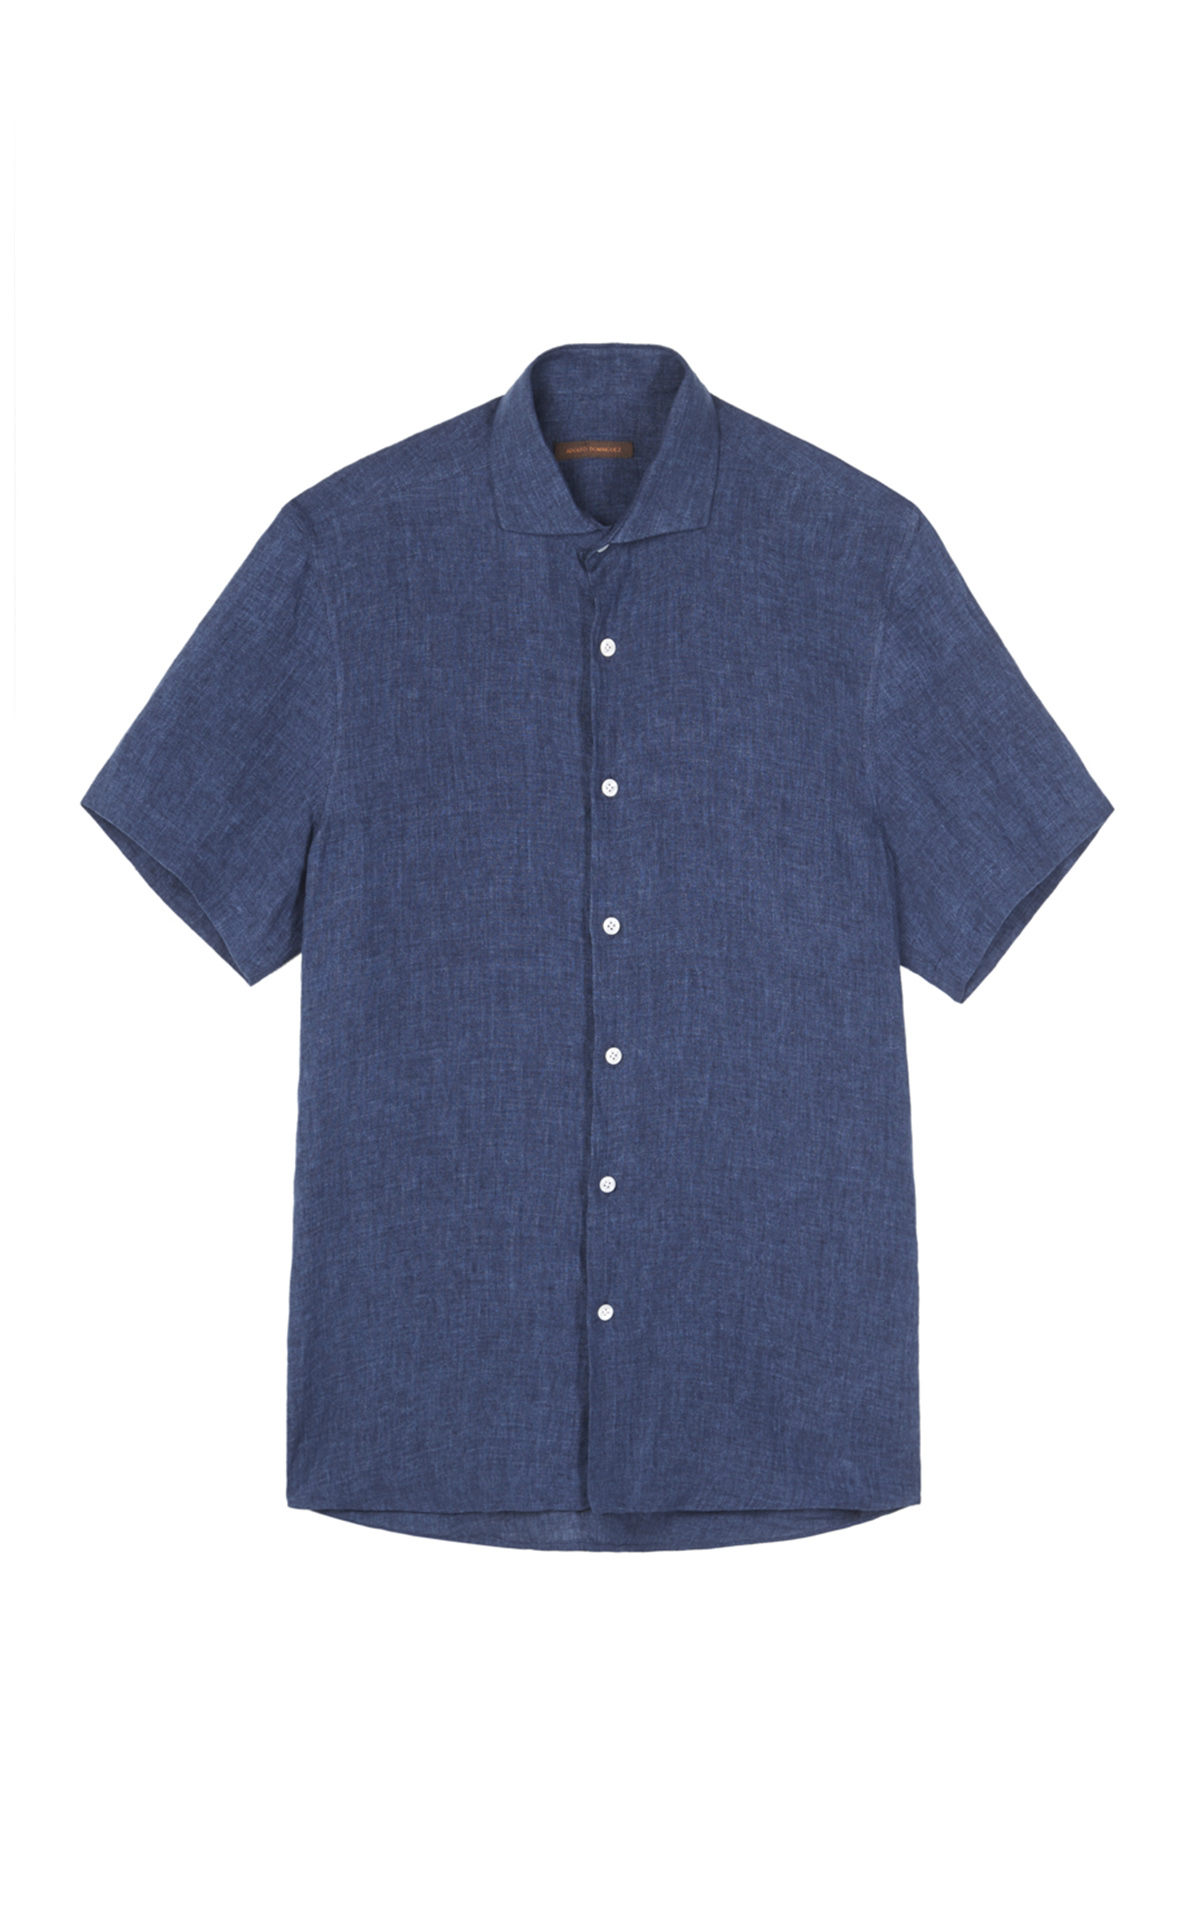 Blue linen shirt short sleeves Adolfo Dominguez